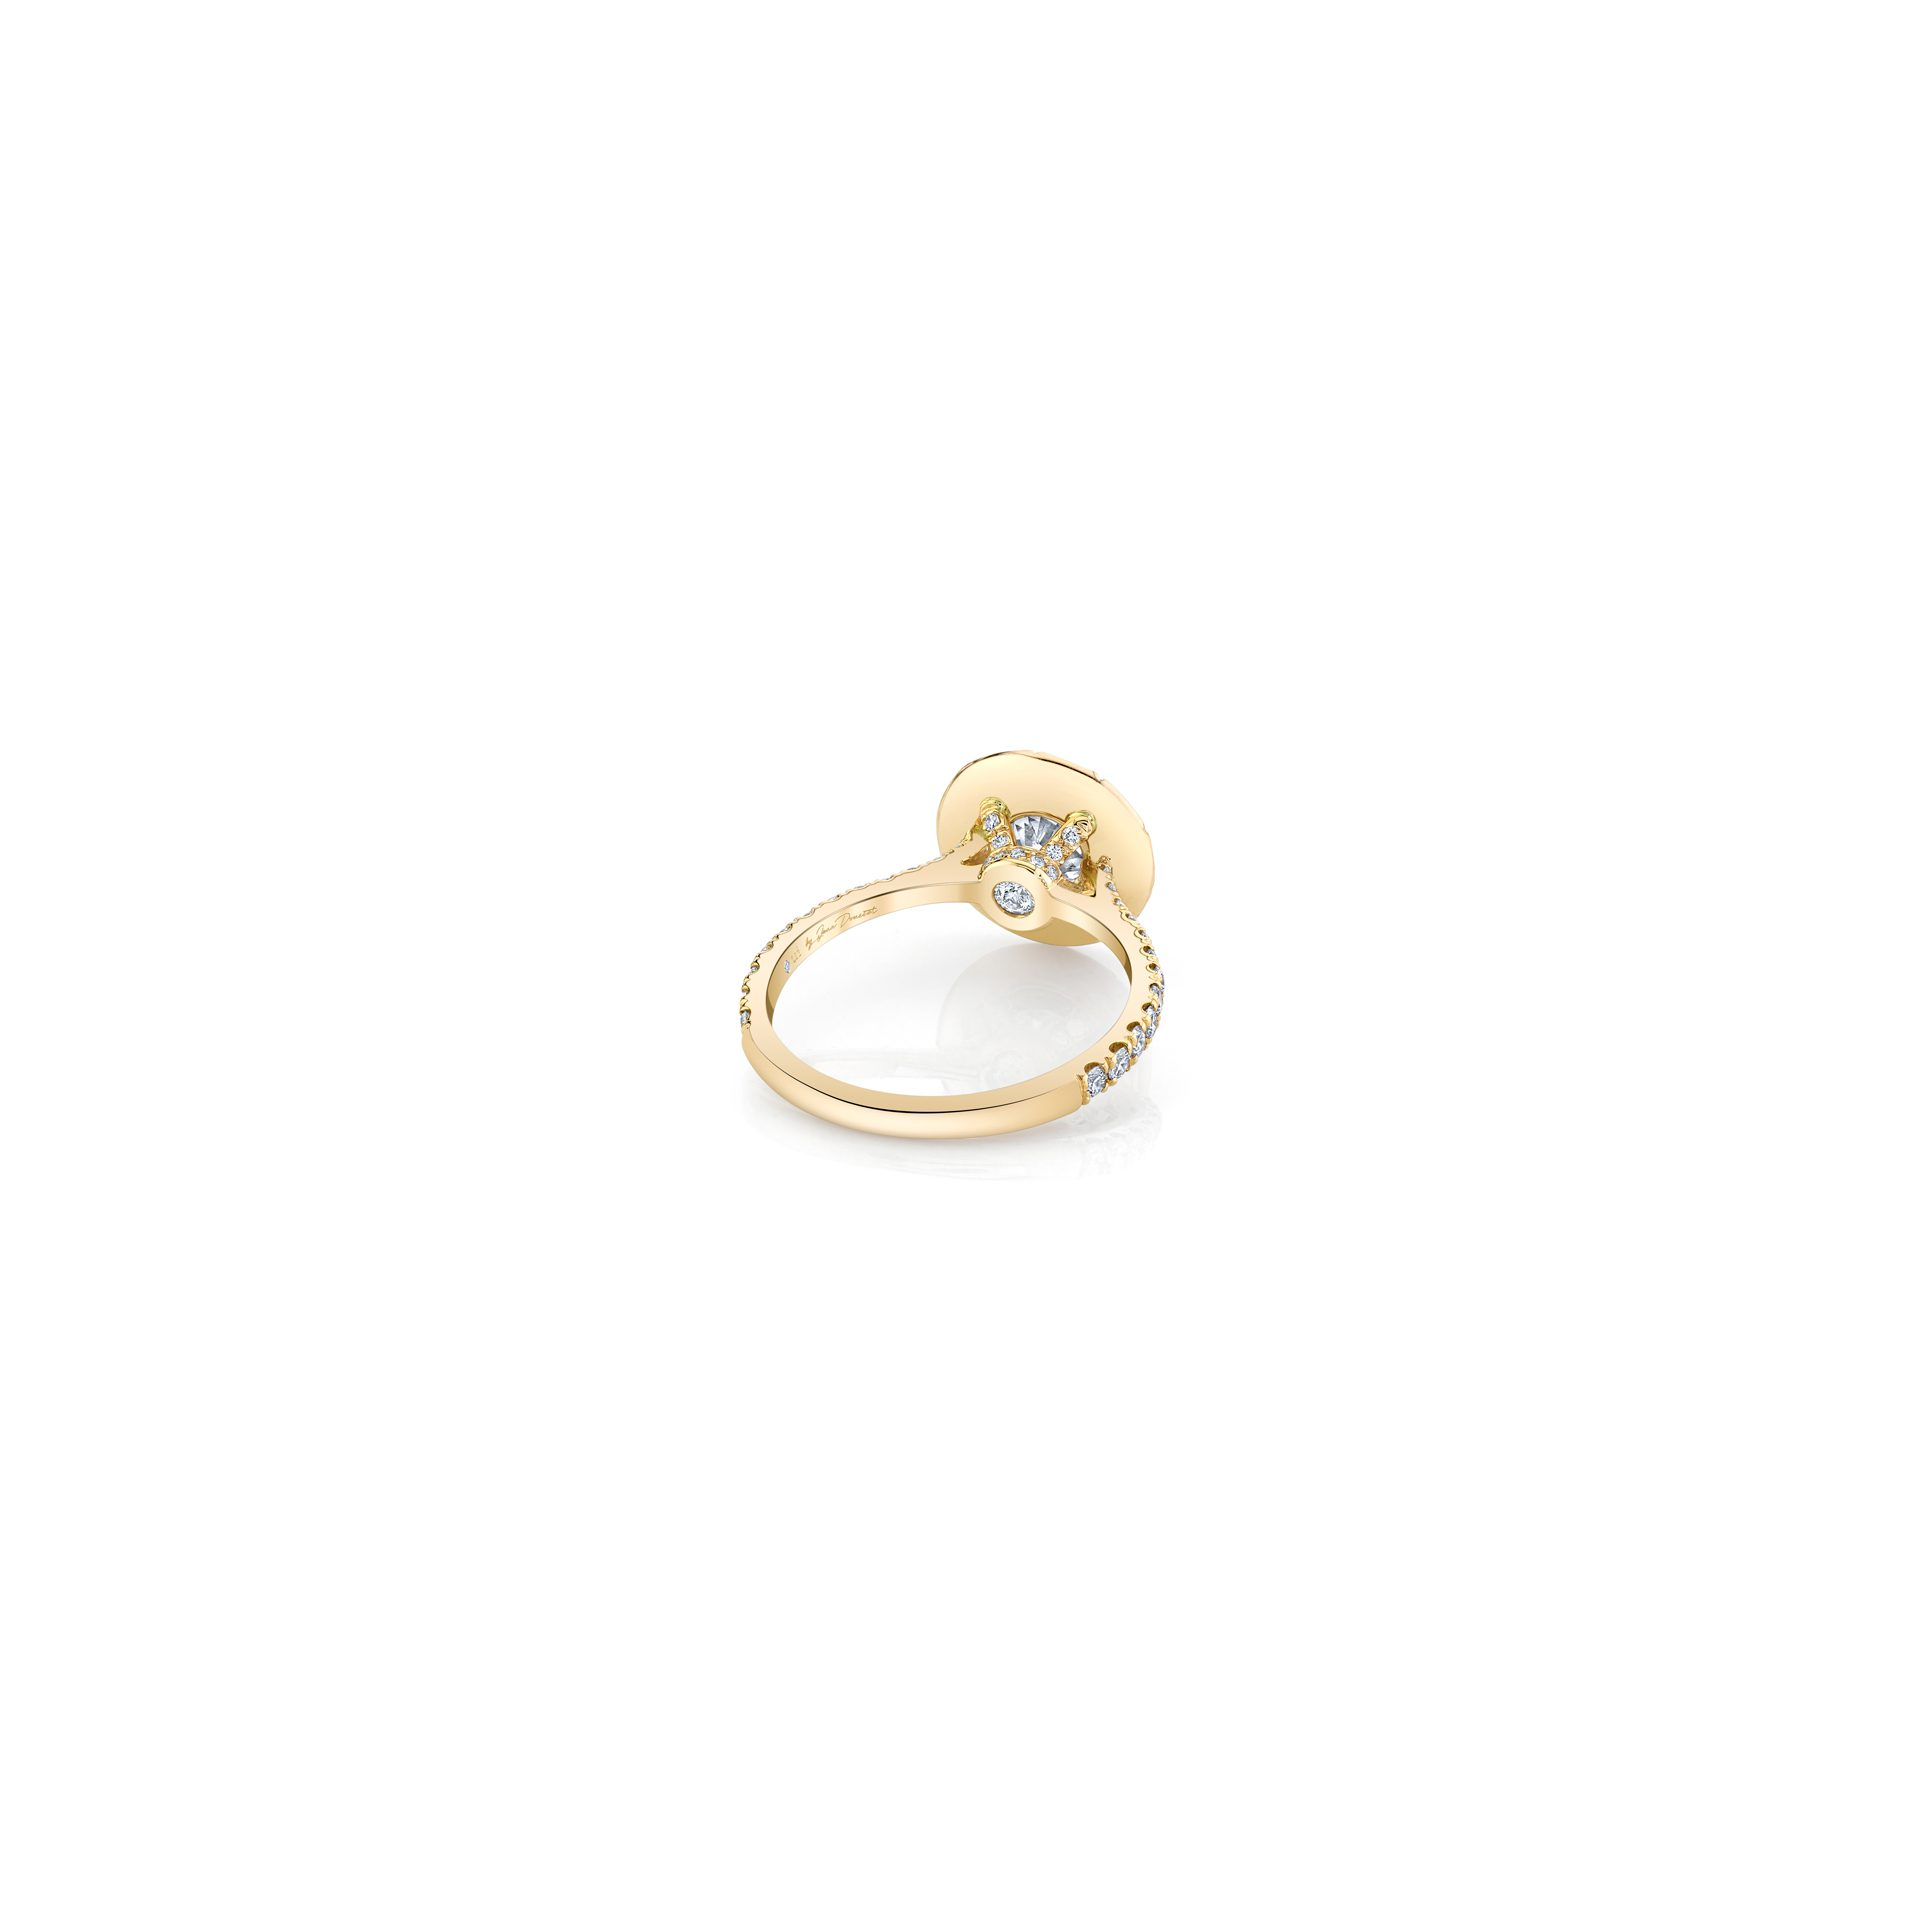 Eloise Round Brilliant Seamless Solitaire™ Engagement Ring with diamond pavé in 18k Yellow Gold Back View by Oui by Jean Dousset